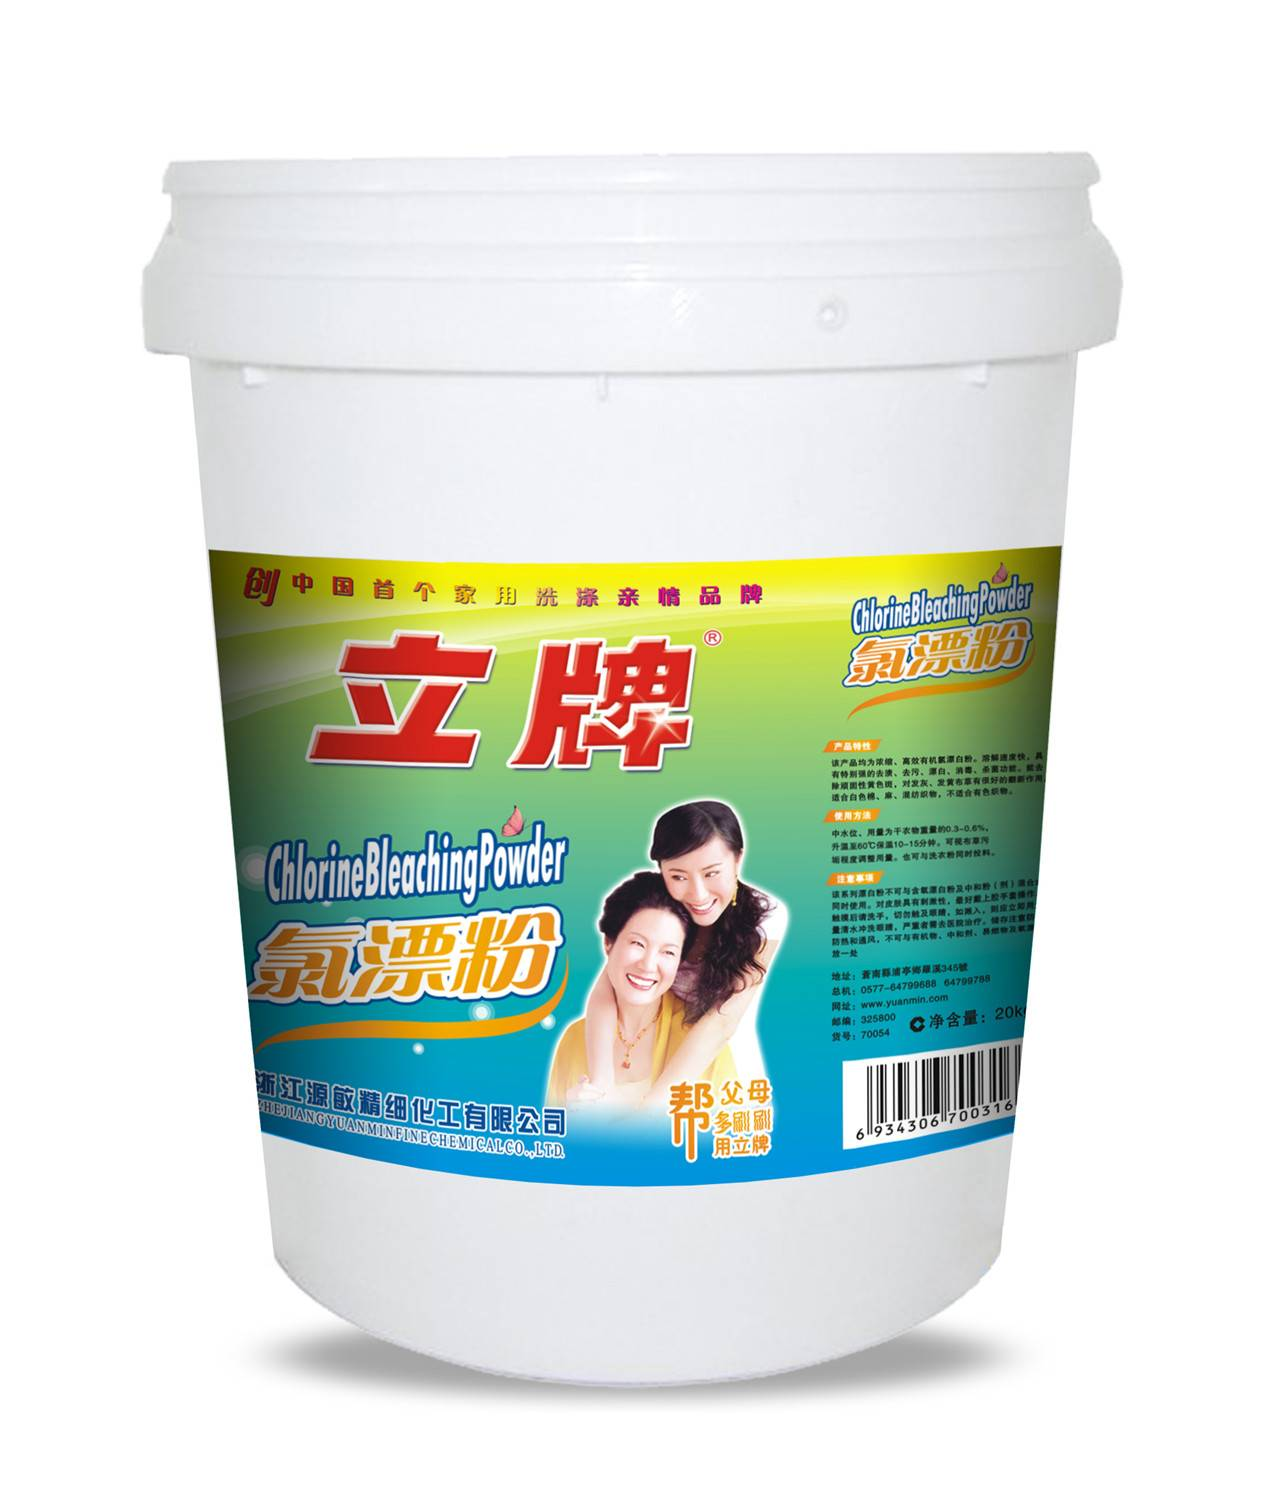 Lipai Chlorine Bleaching Powder, 20kg, Strong Scouring, Luandry And Hotel Use, OEM